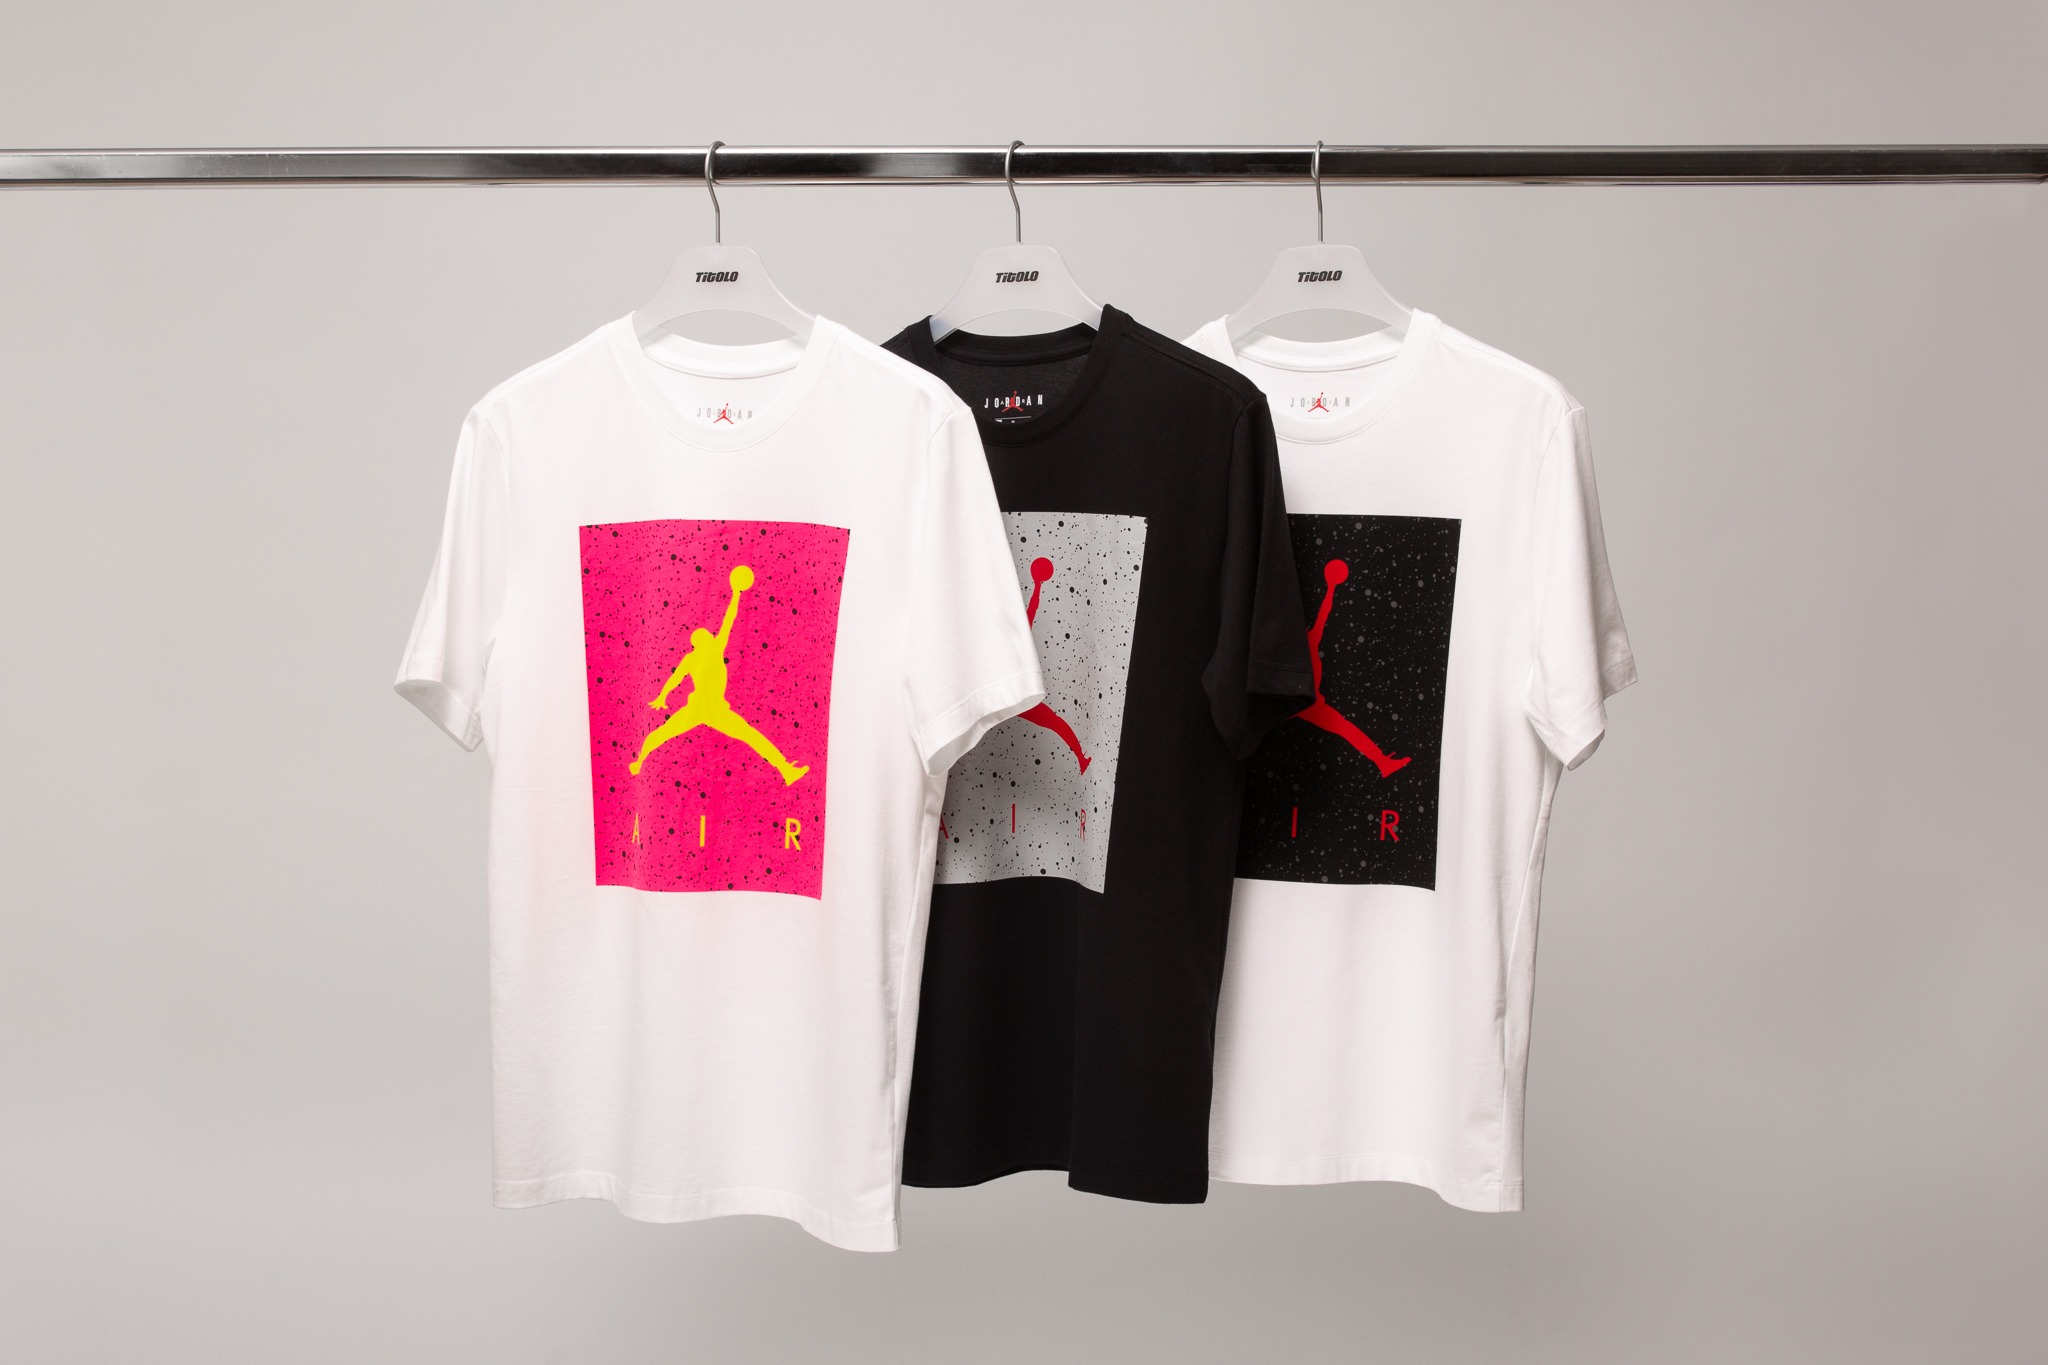 77dde353b8aadd With poolside weather here, Jordan Brand has released a collection of the  Poolside SS CTN Crew T-Shirt. Cotton blend built, the t-shirts feature the  Jumpman ...